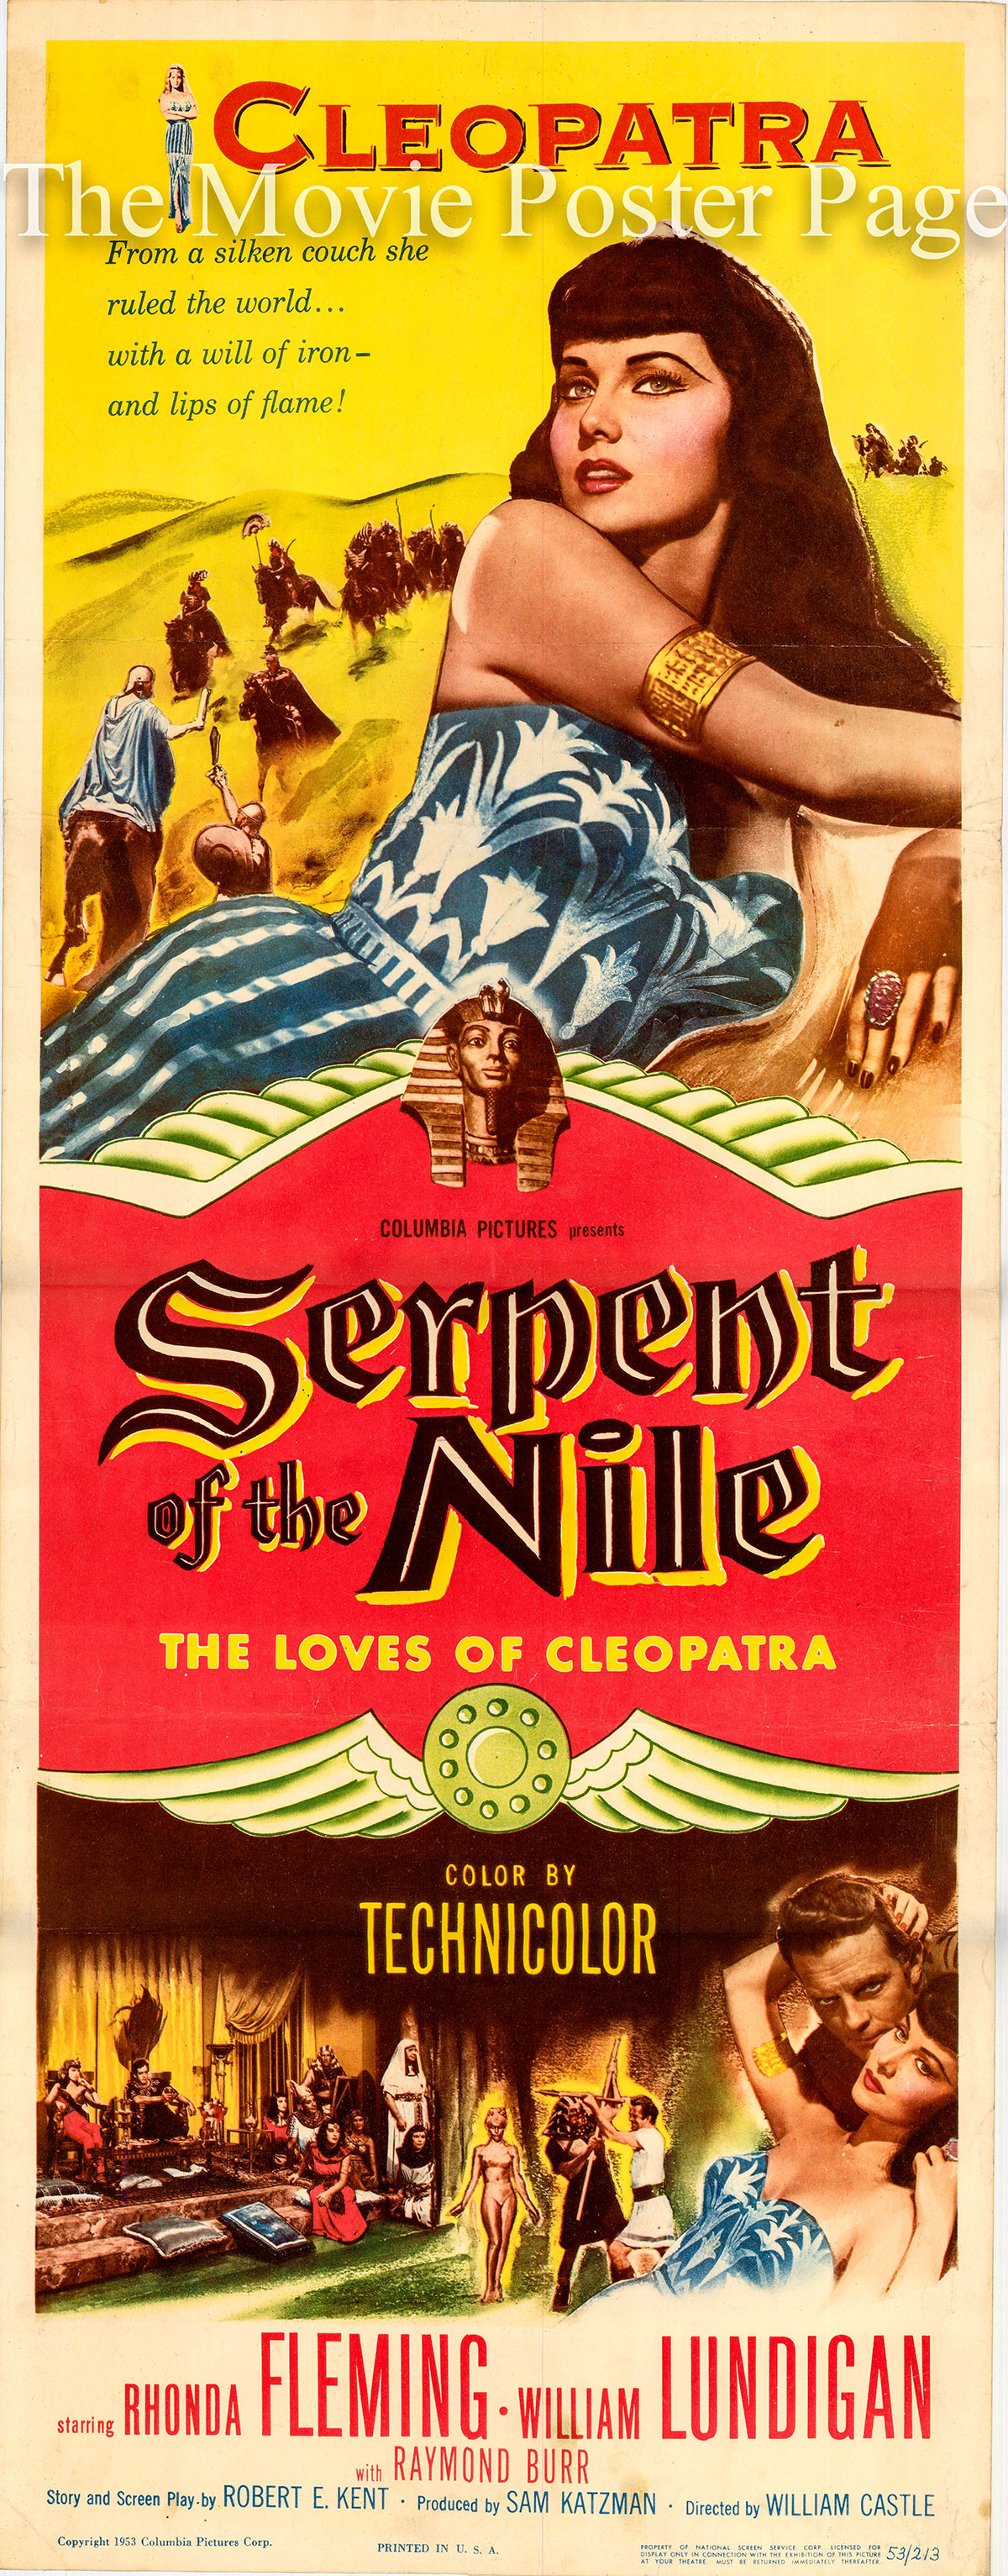 Pictured is a US promotional insert for the 1953 William Castle film Serpent of the Nile starring Rhonda Fleming.